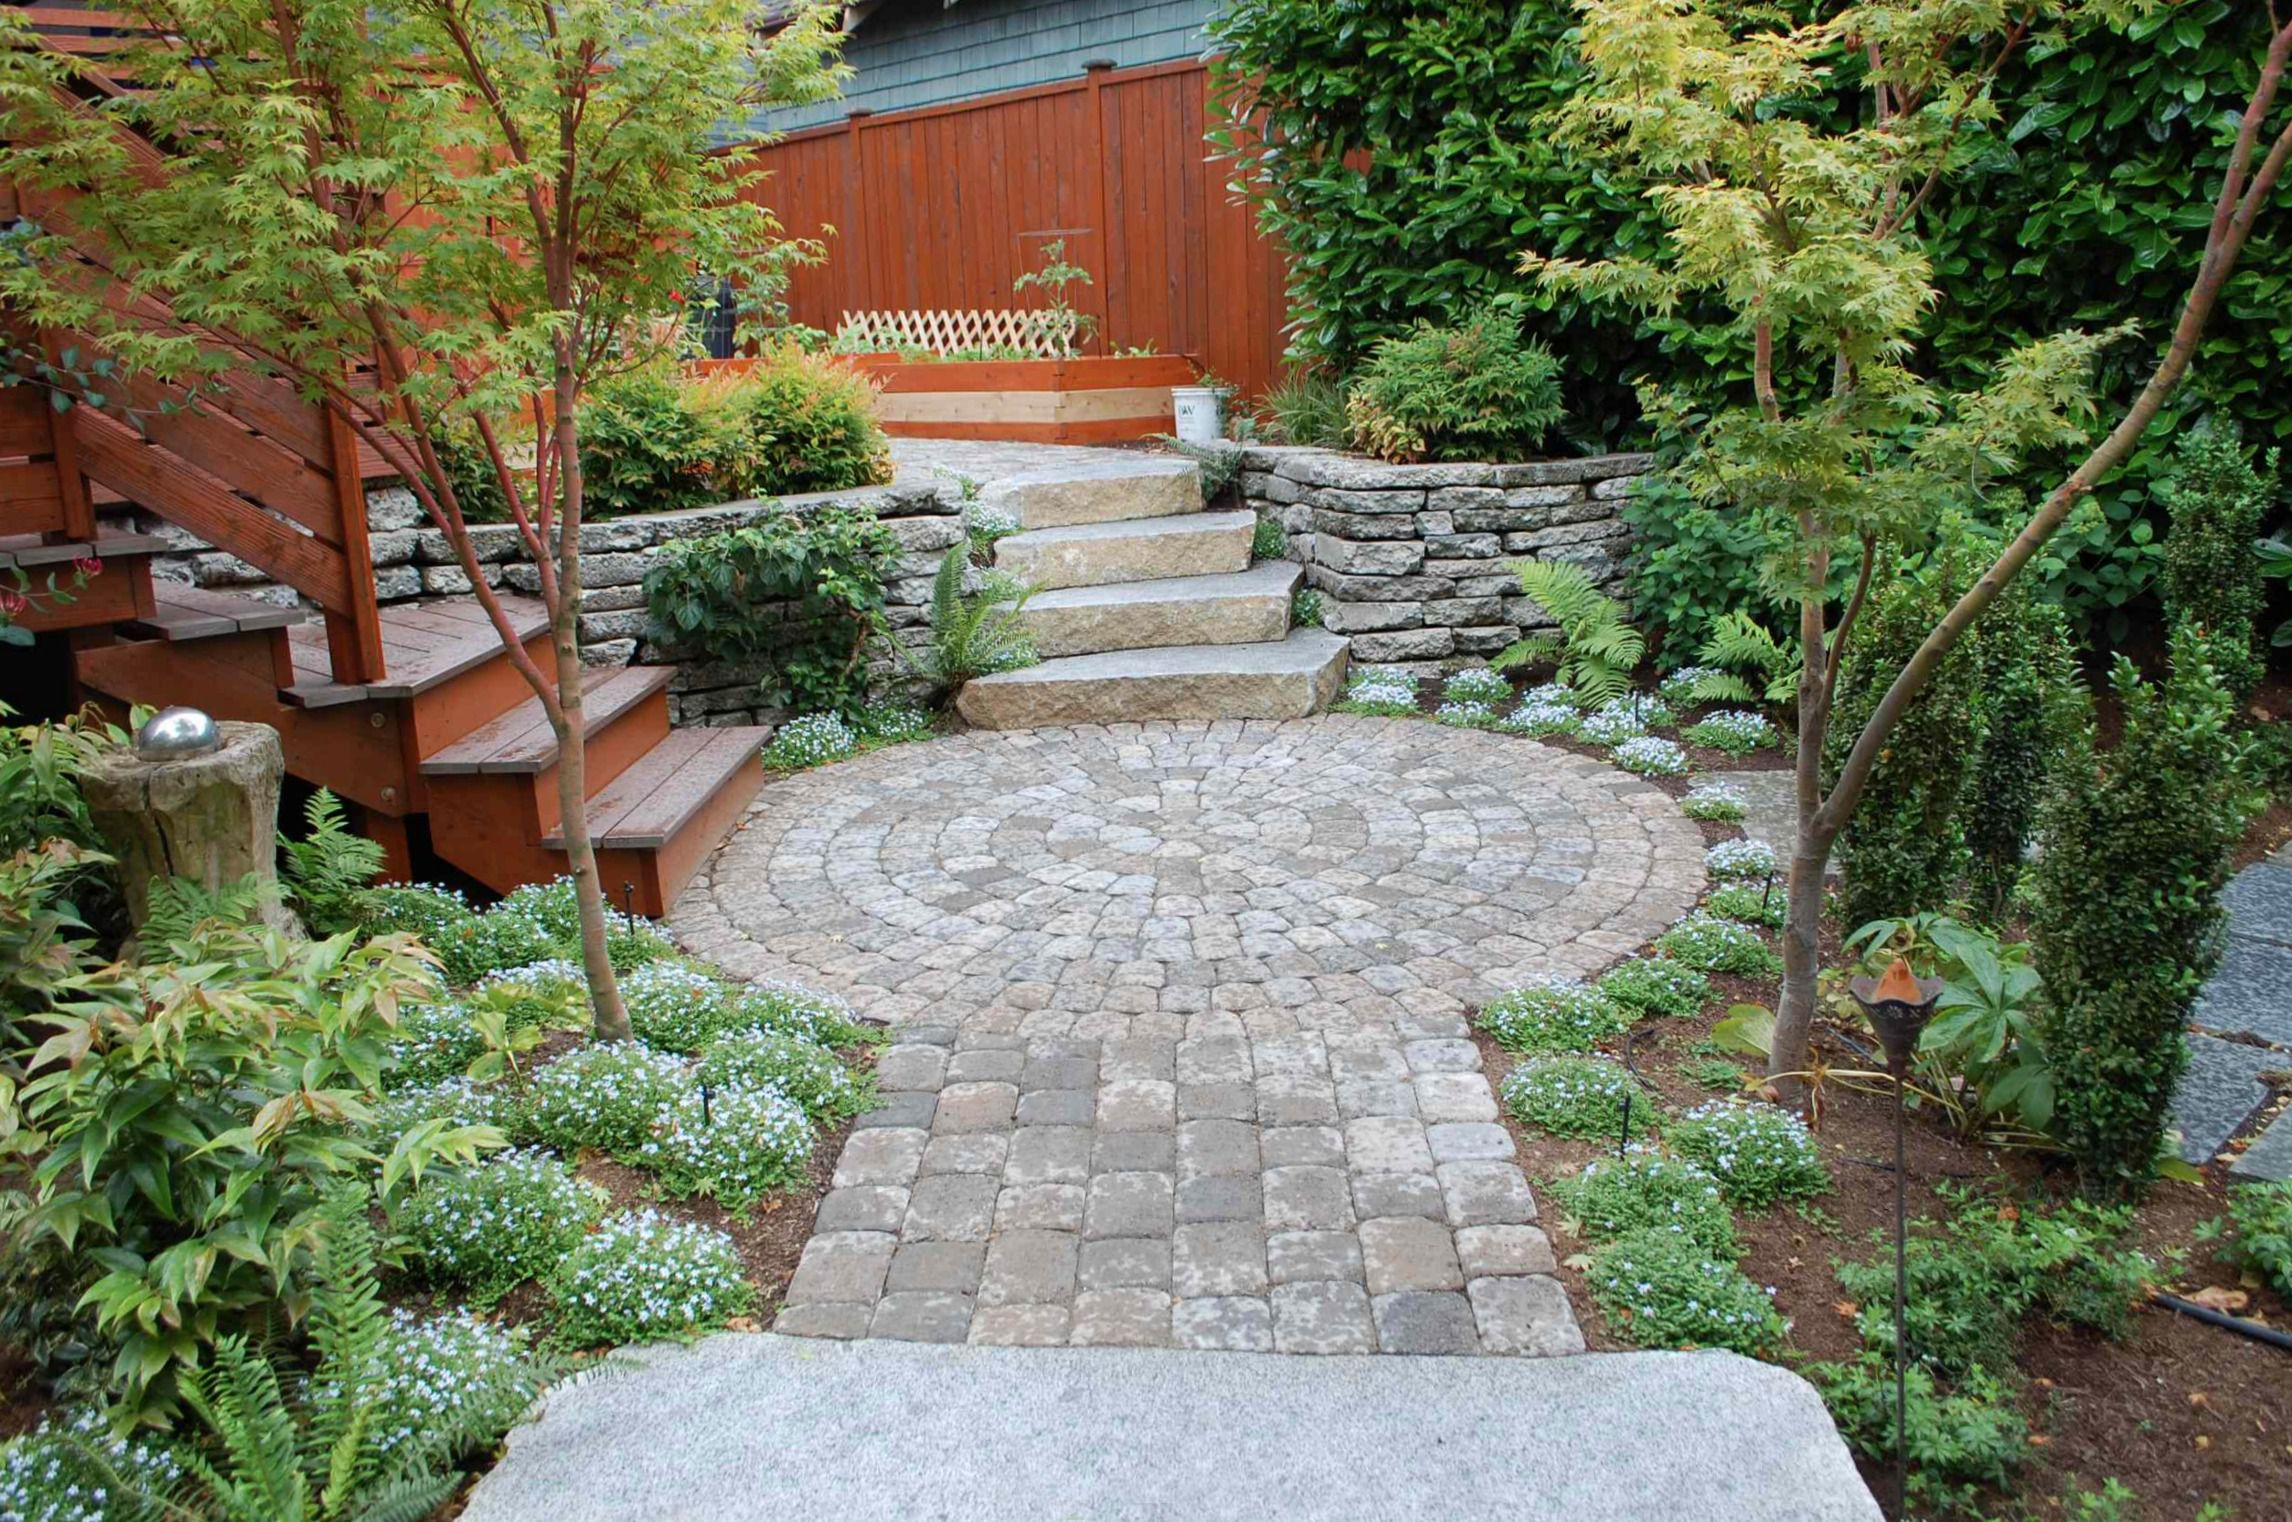 25 Perfect Patio Paver Design Ideas on Yard Paver Ideas  id=38124